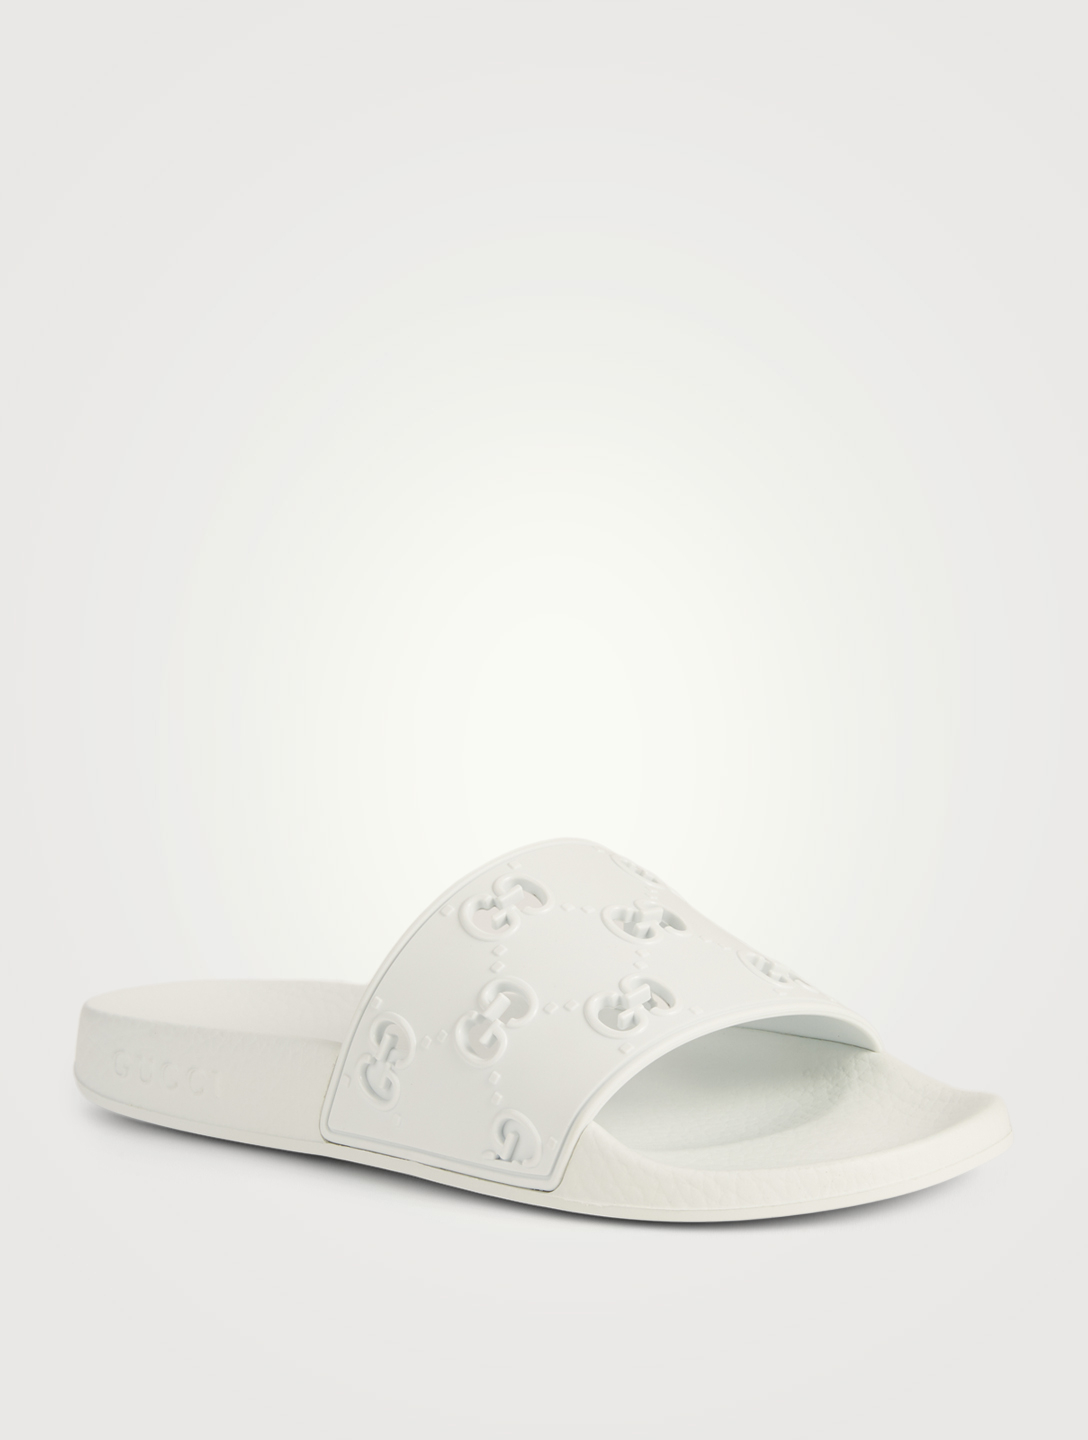 e55e56b02 ... GUCCI Pursuit GG Rubber Slide Sandals Women's White ...